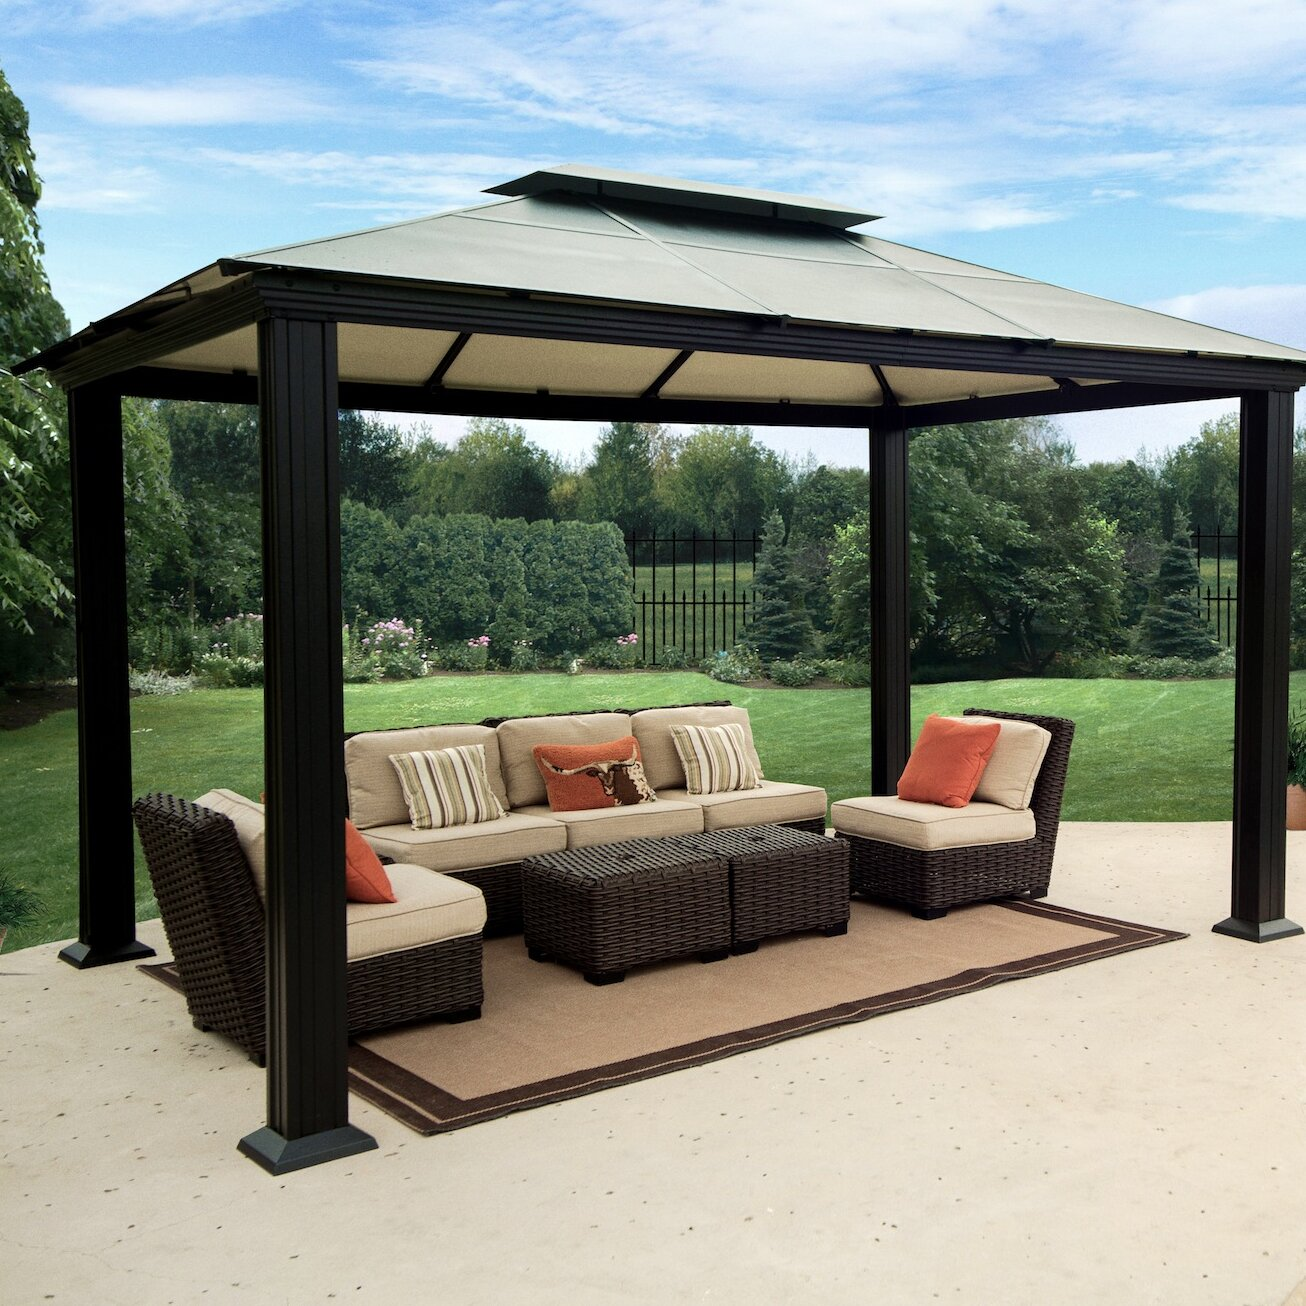 Superb Santa Monica Four Season 11 Ft W X 13 Ft D Metal Patio Gazebo Home Interior And Landscaping Ologienasavecom